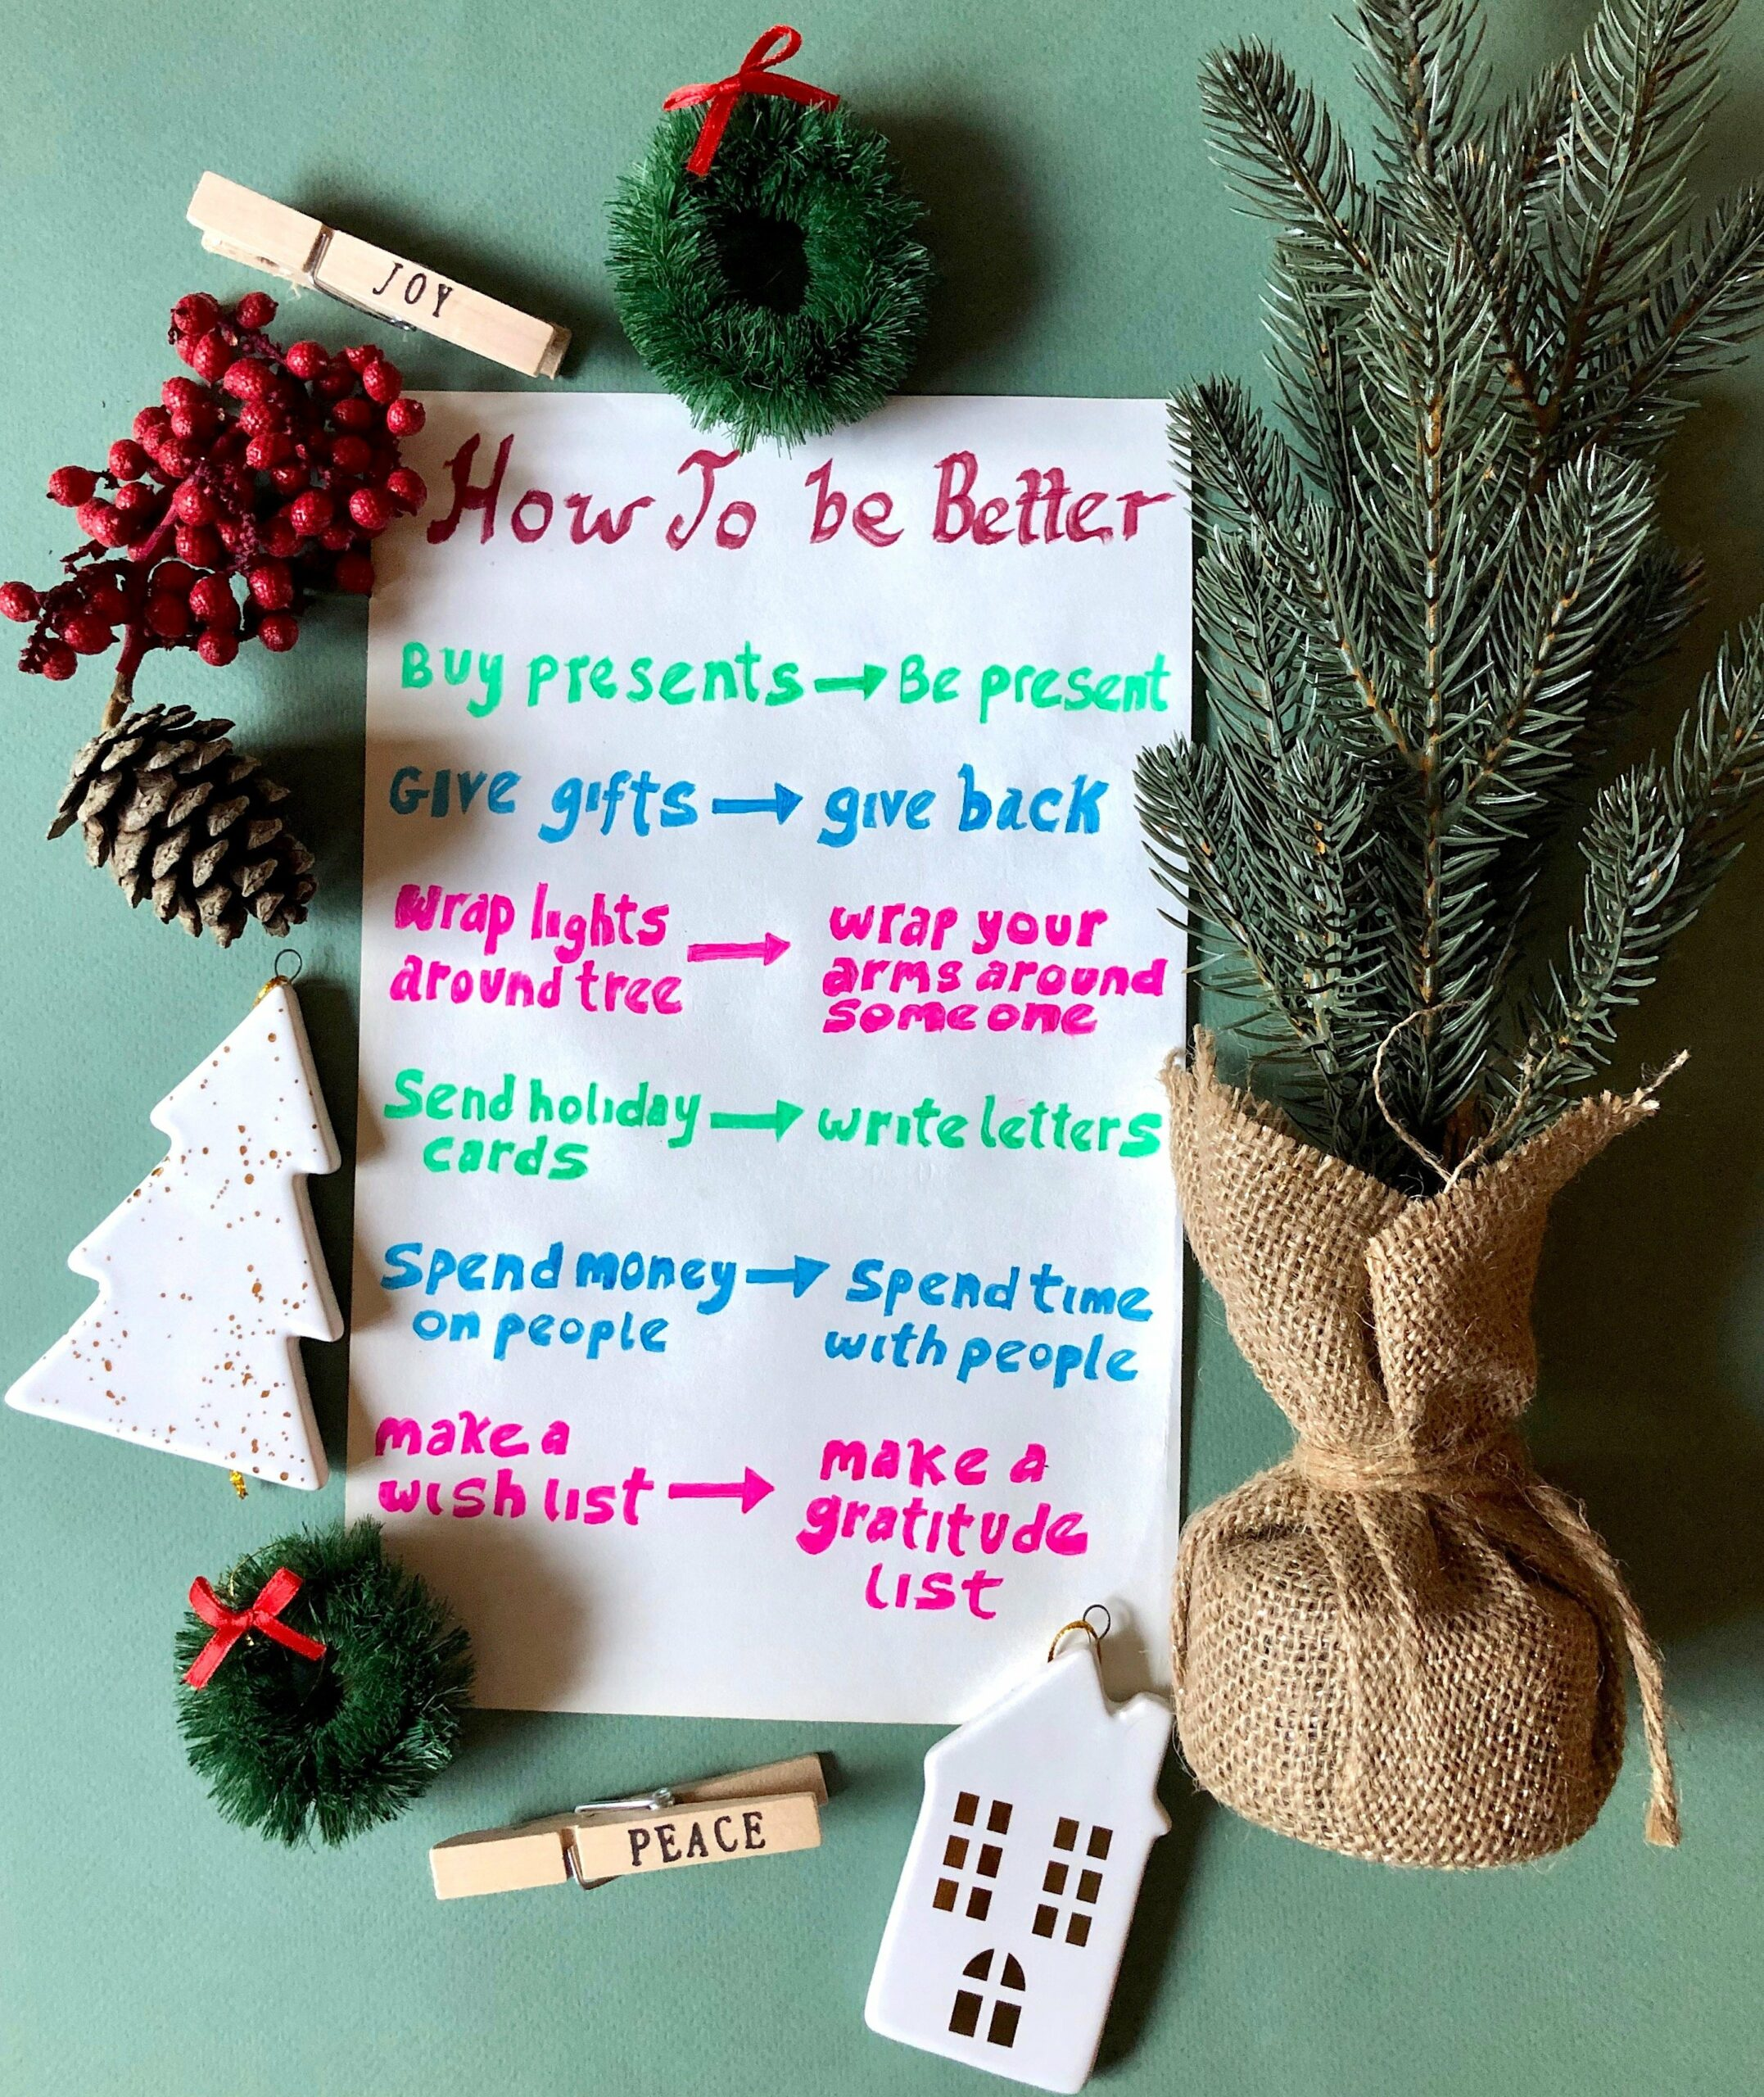 ways to be a better person this holiday season, mindfulness tips, holiday tips, how to be better, holiday wellness tips